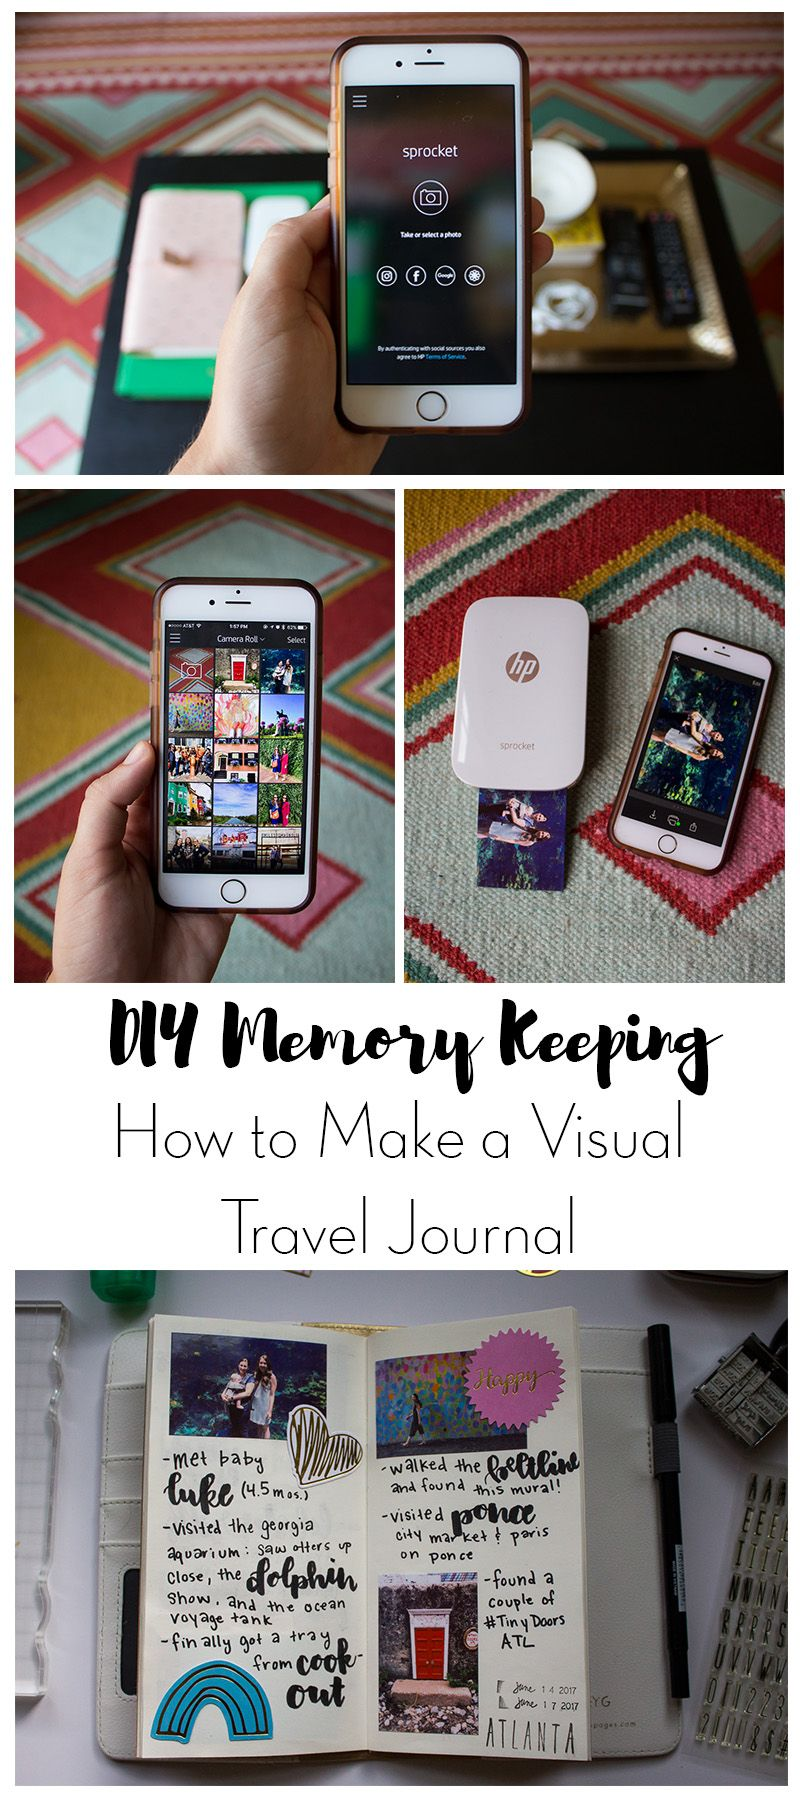 memory keeping with the hp sprocket | crafts & diy projects | pinterest